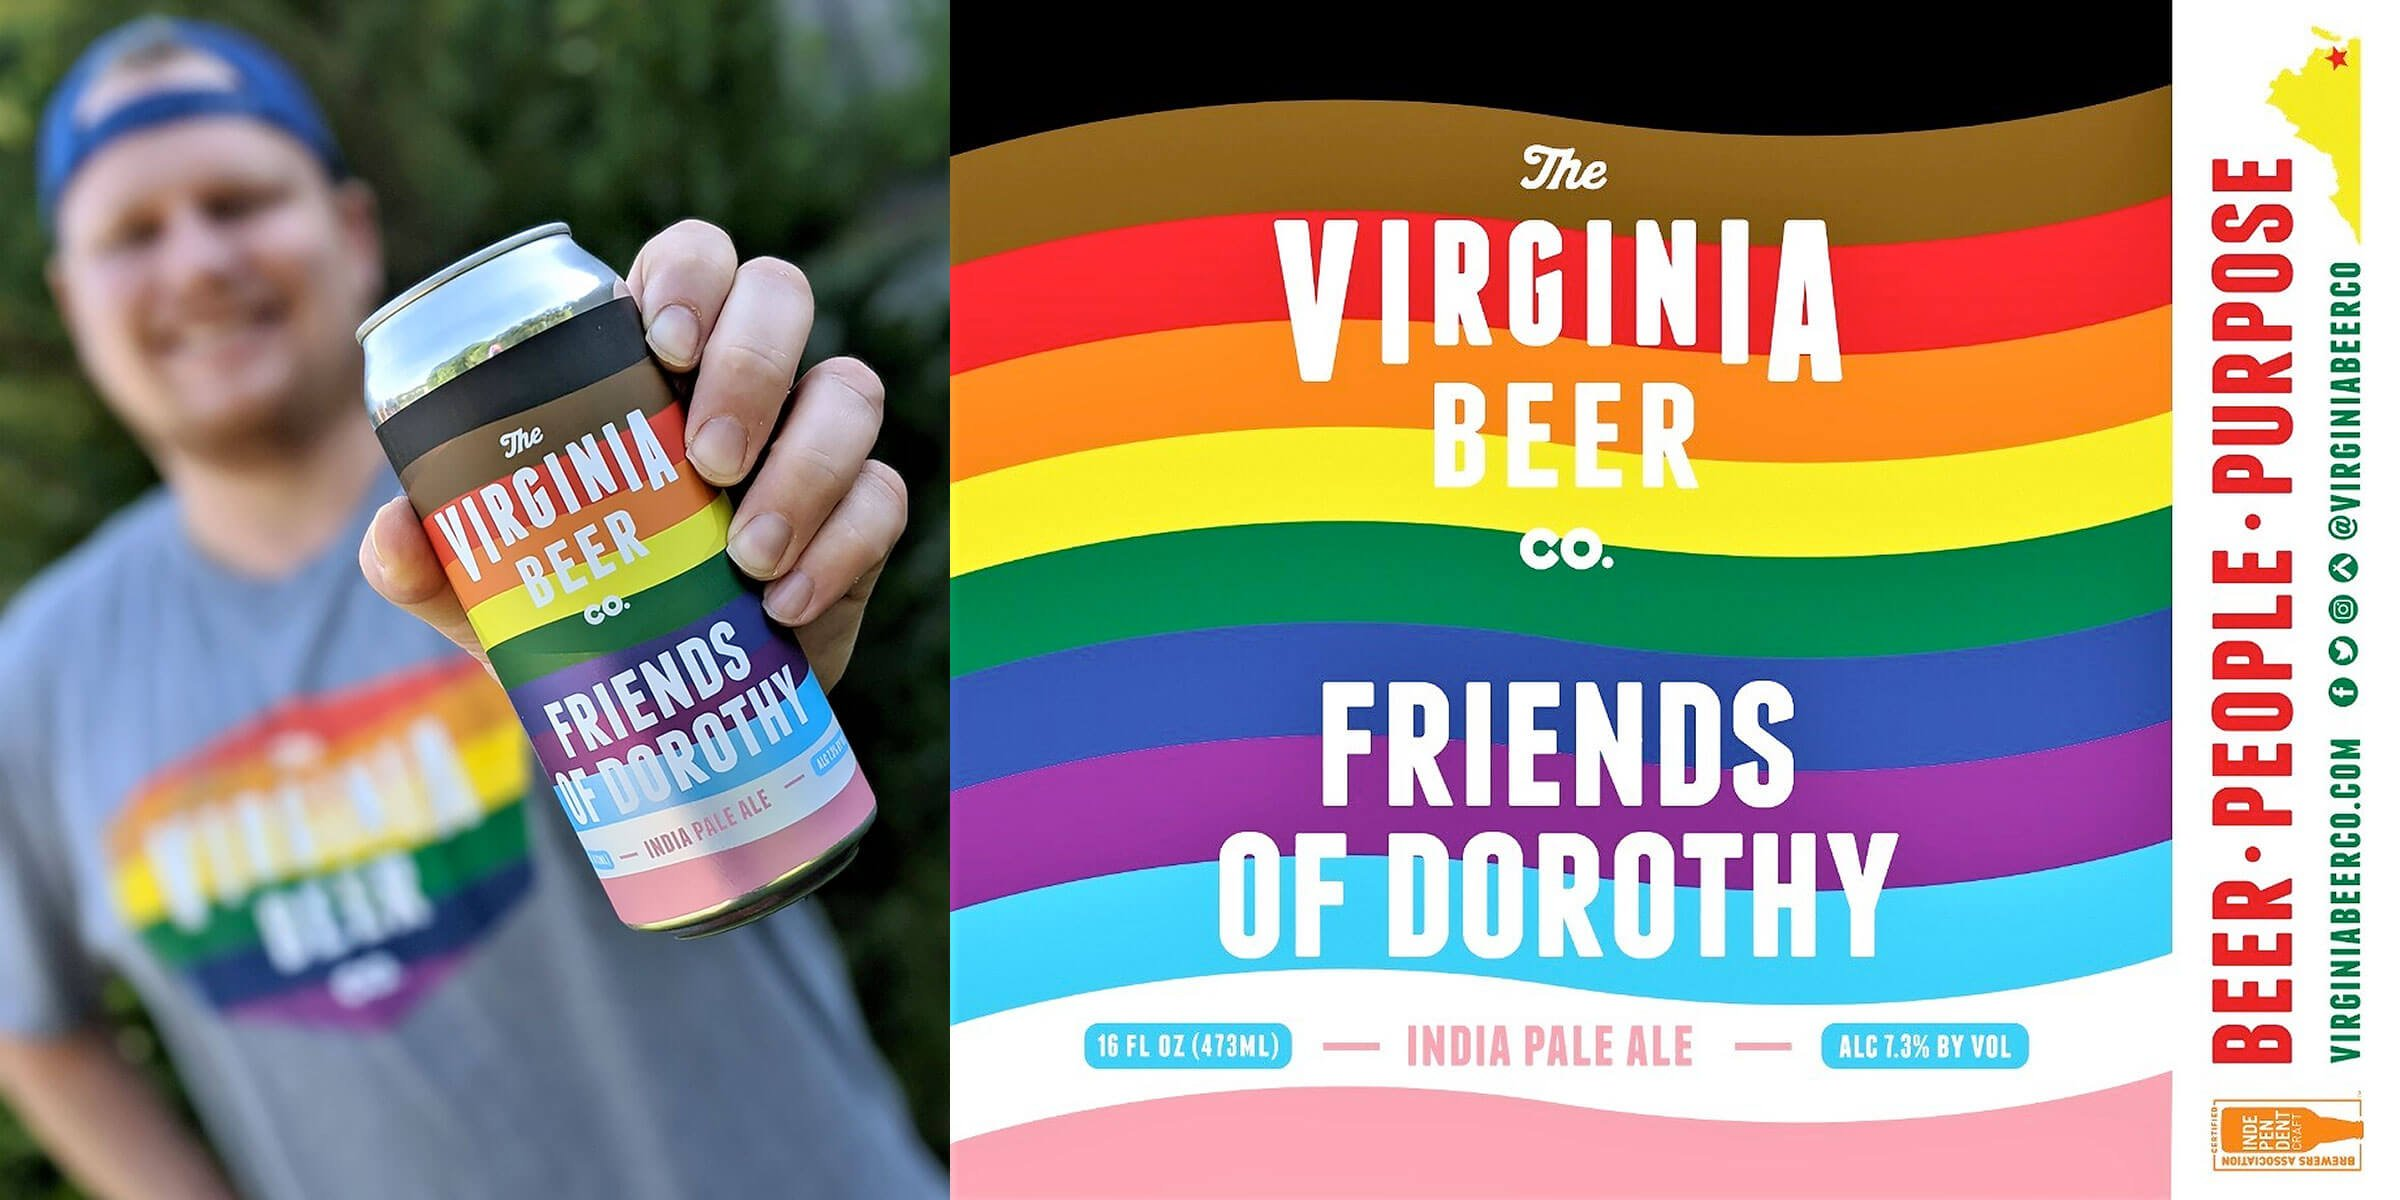 The Virginia Beer Company is proud of its latest limited release, the Friends Of Dorothy Pride IPA, to highlight greater inclusivity in the community.